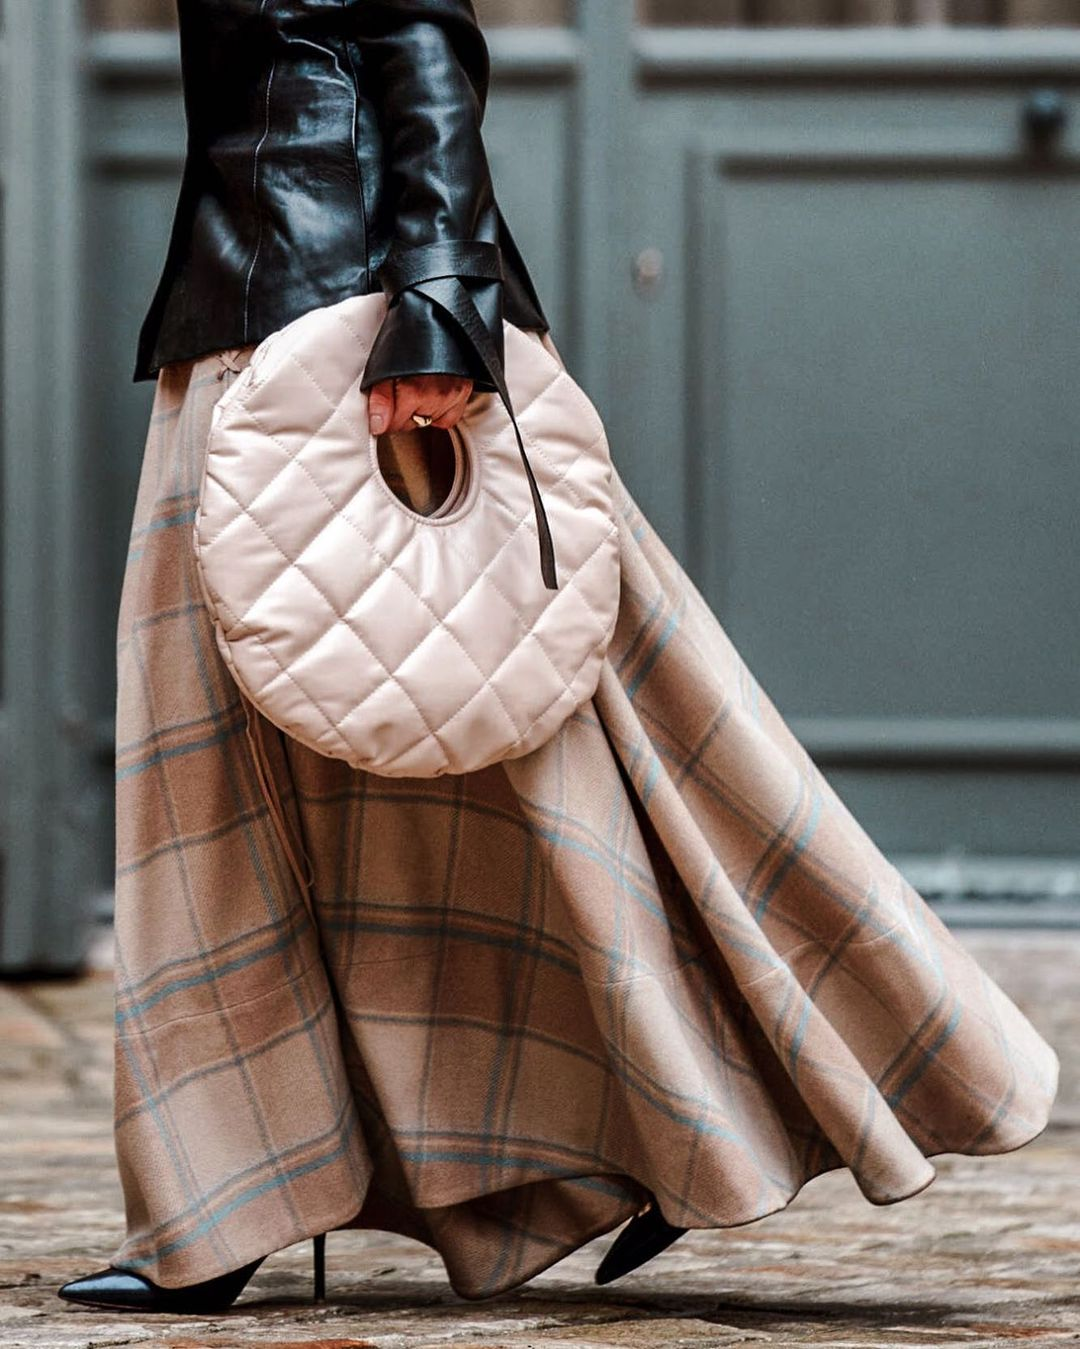 julia-comil-awake-mode-bo-quilted-clutch-bag-instagram